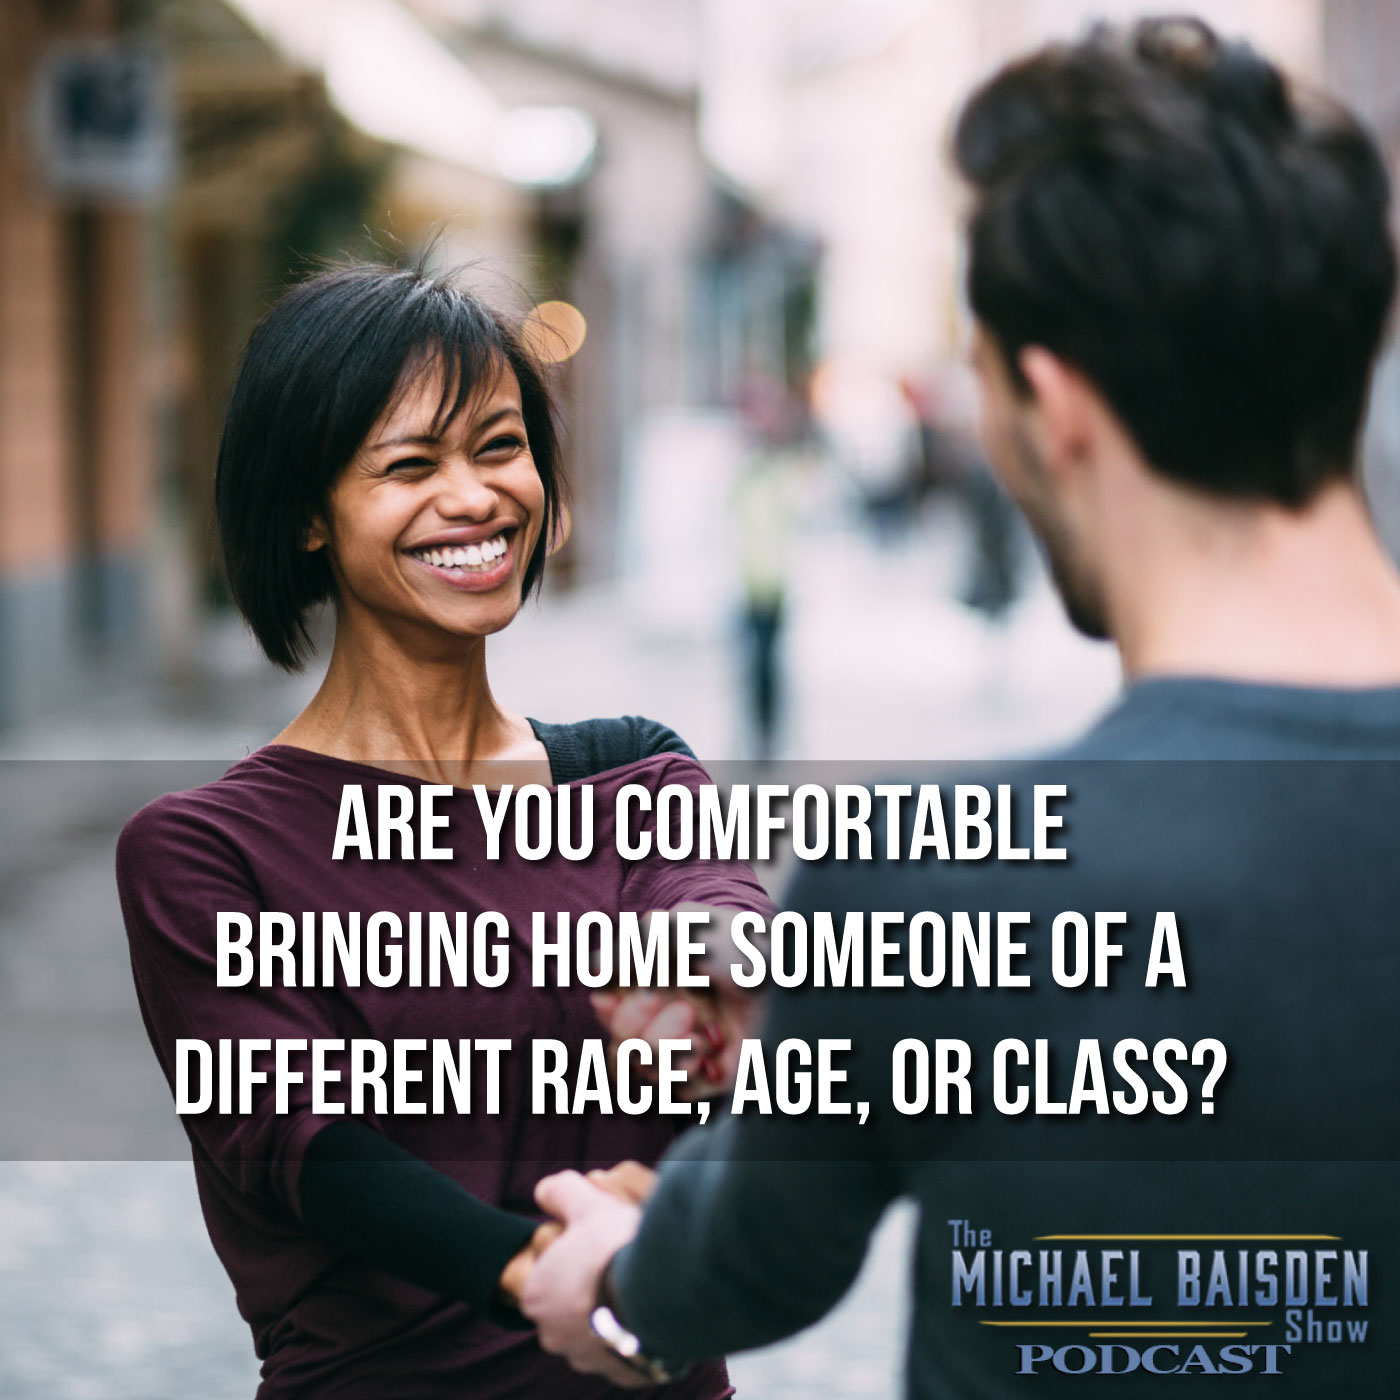 Dating A Self Of A Distinctive Race